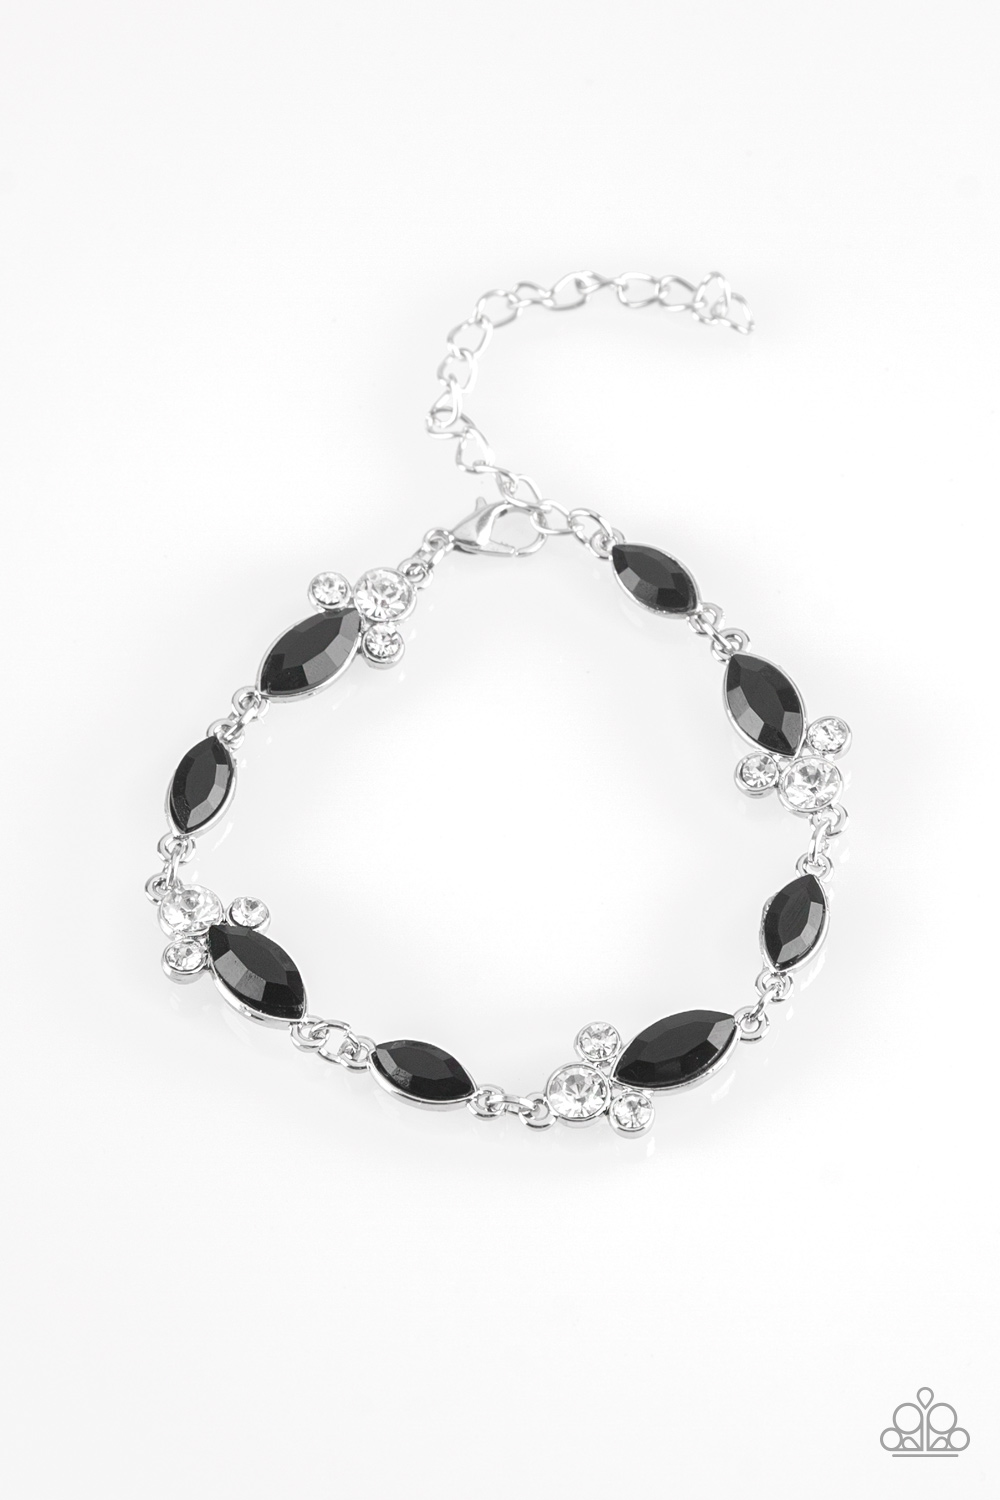 At Any Cost Black Rhinestone Bracelet by Paparazzi $5 www.my-bling.com